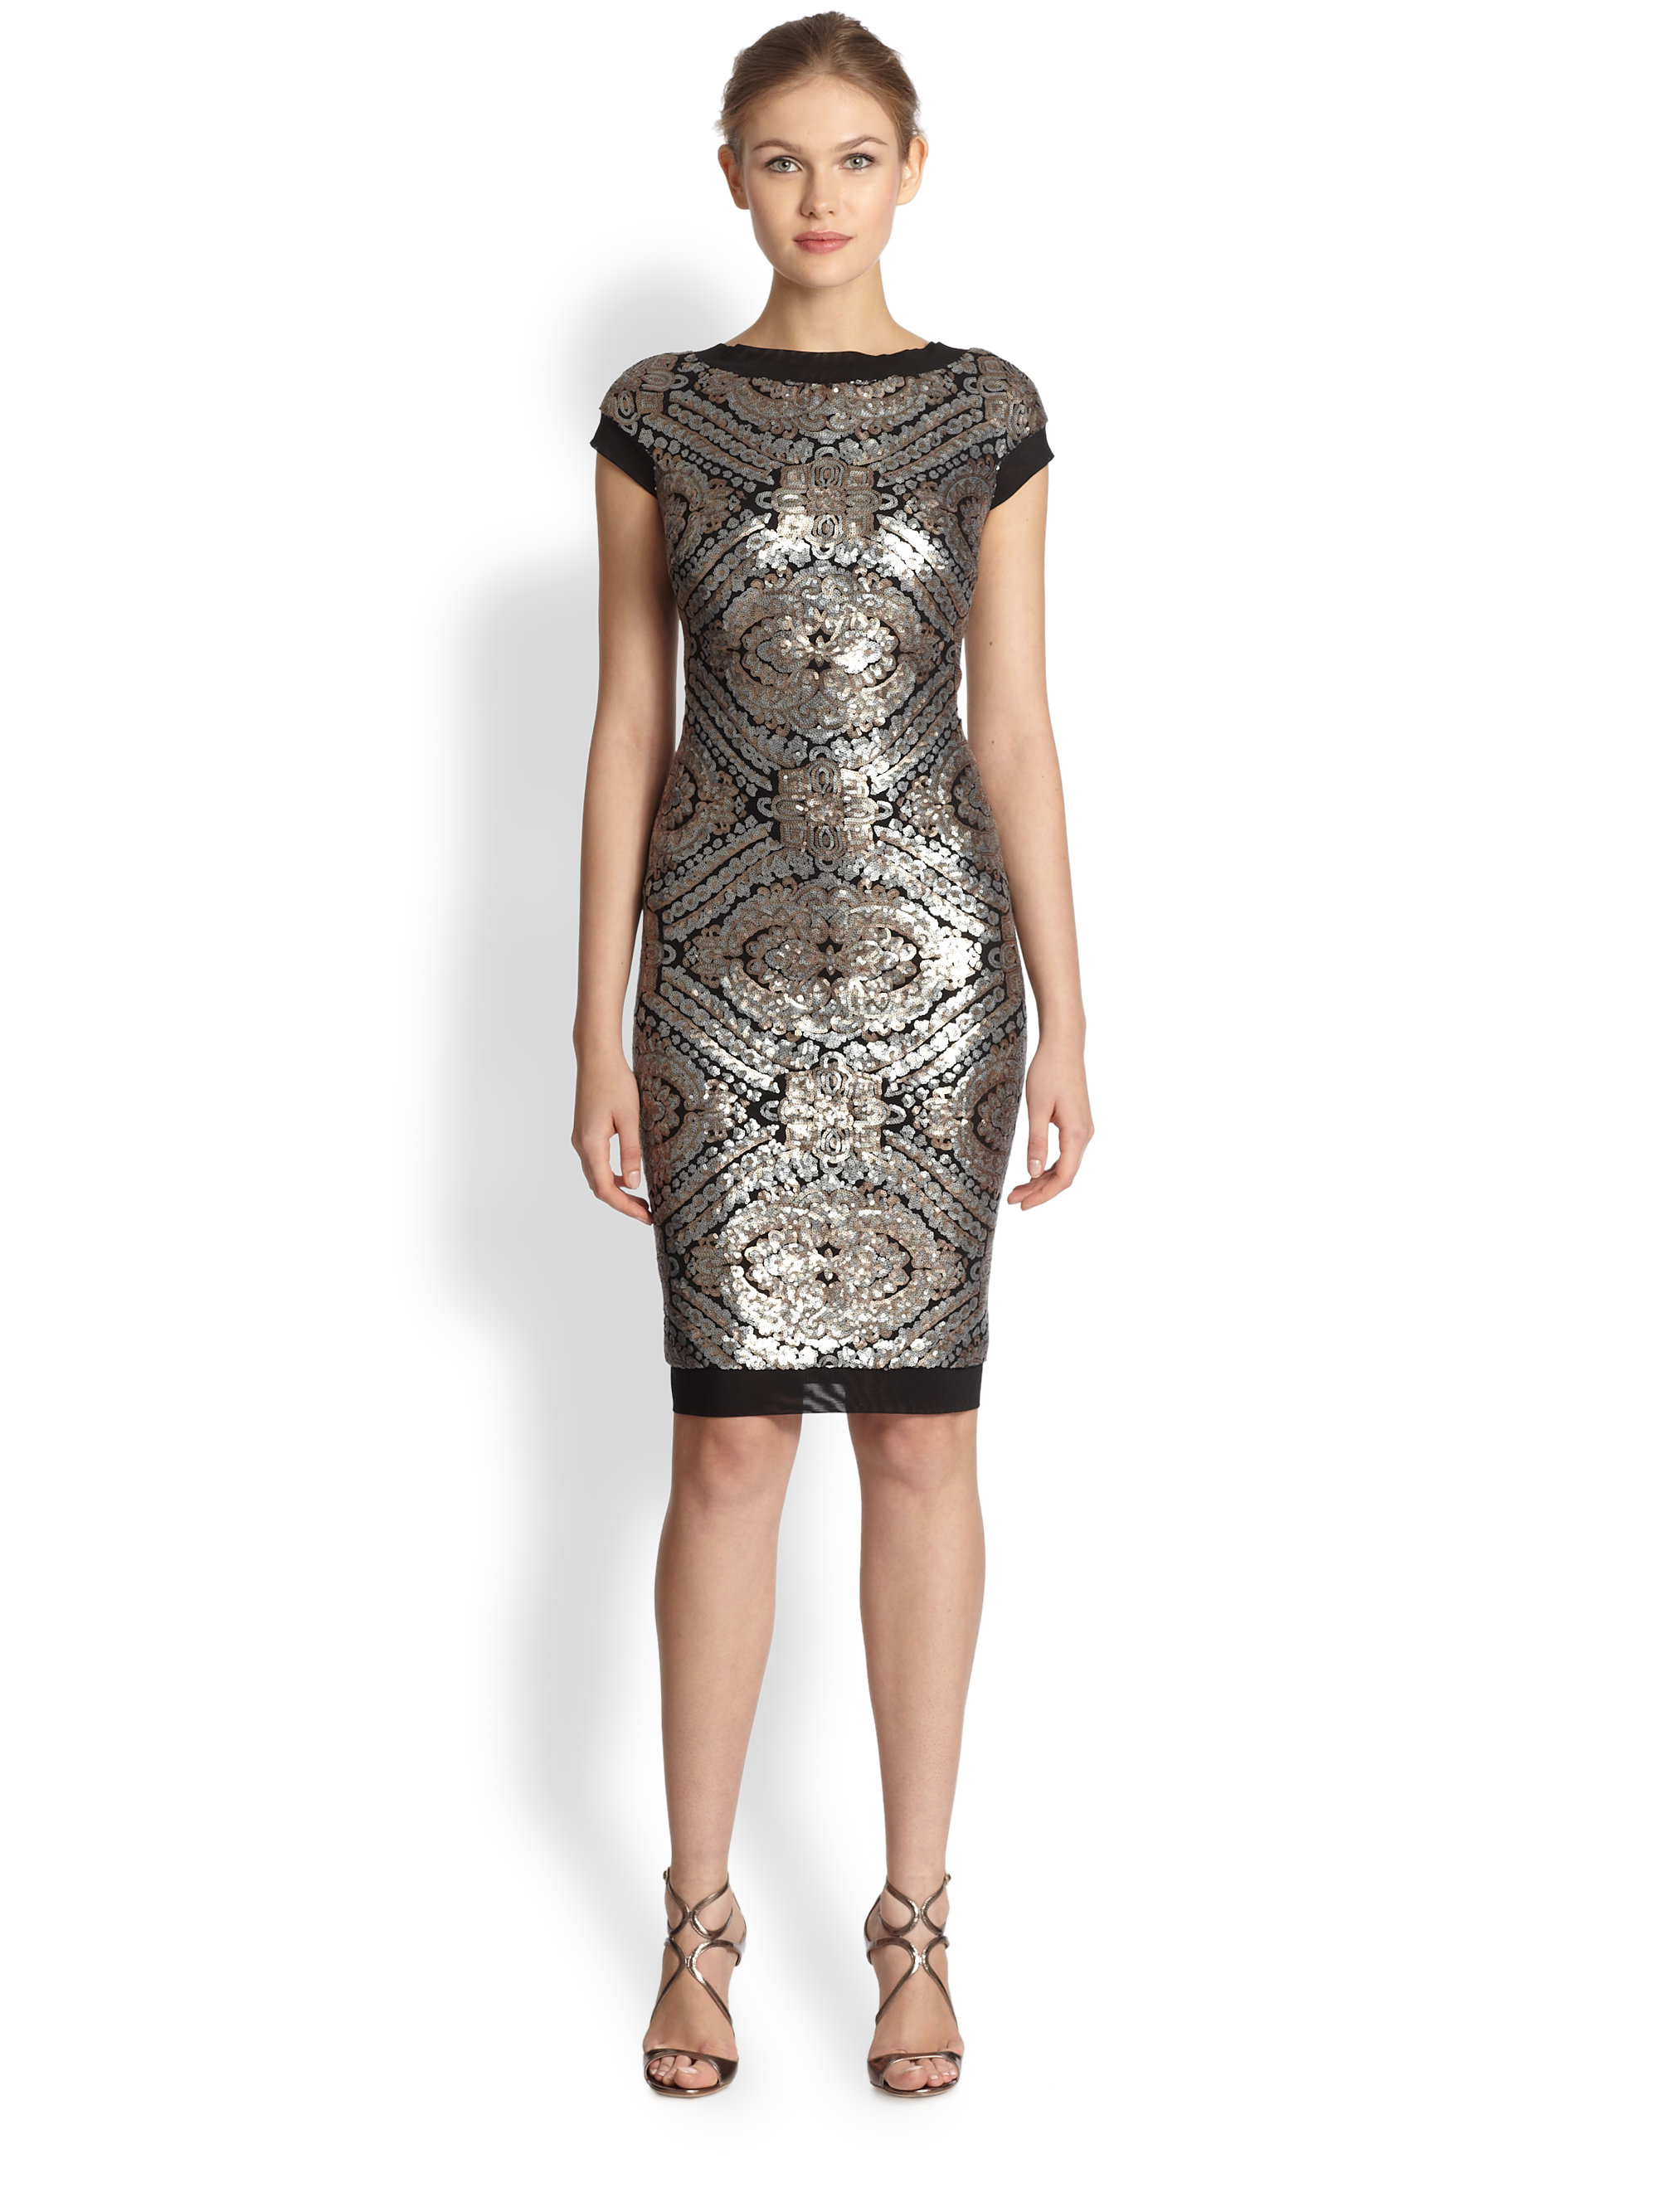 228ae5271e3 Tadashi Shoji Sequined Cap Sleeve Cocktail Dress in Metallic - Lyst